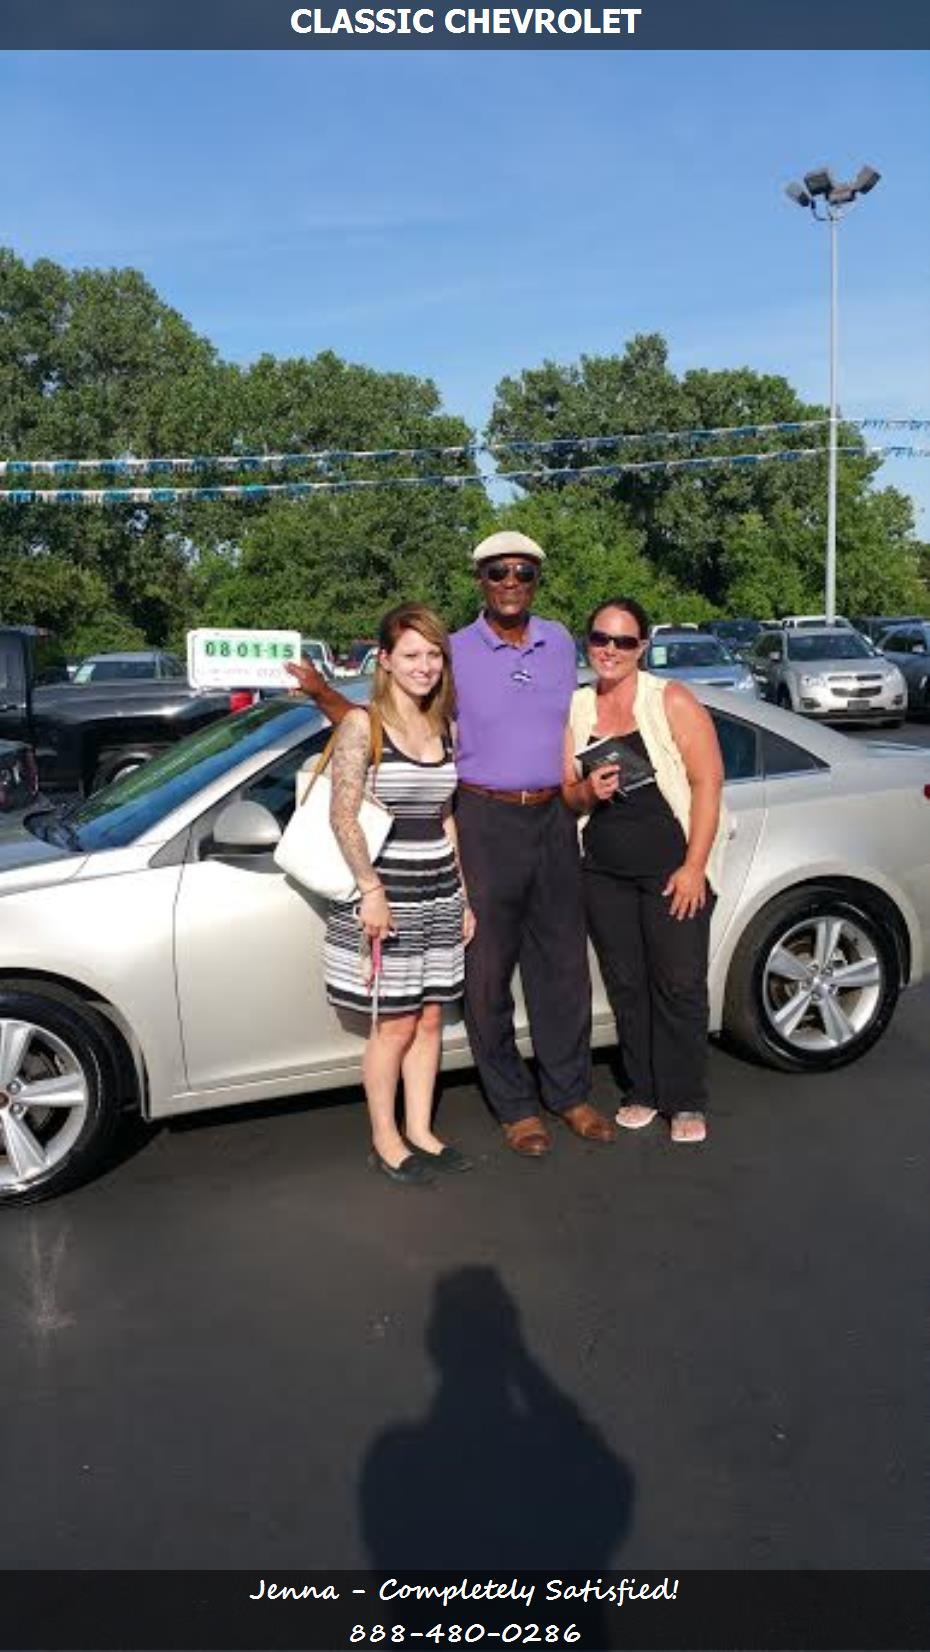 buy 2013 chevrolet cruze classic chevrolet owasso ok jenna. Cars Review. Best American Auto & Cars Review